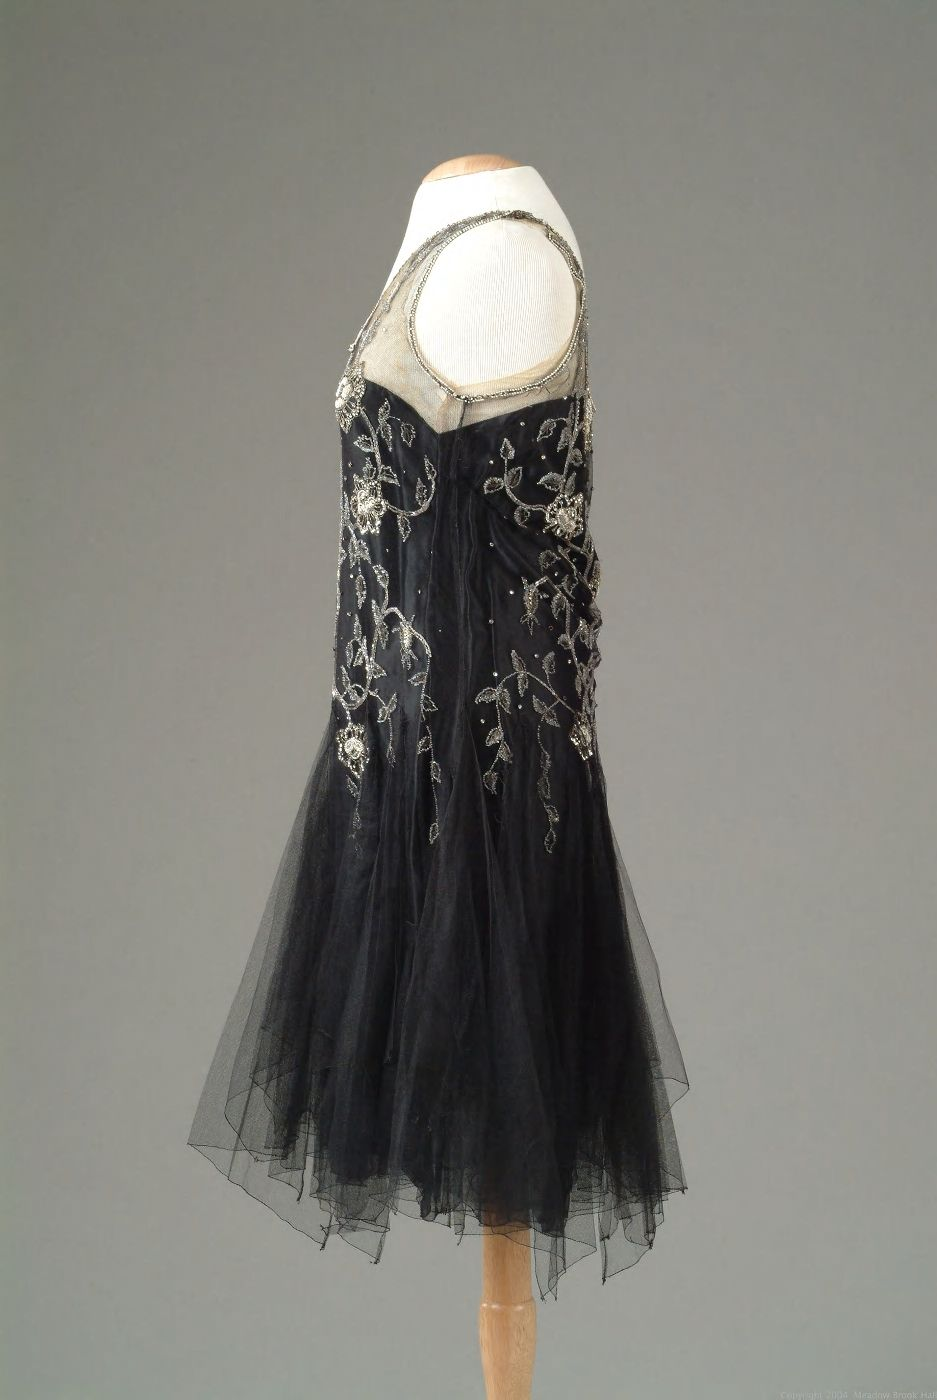 gown of black netting with seed pearl and rhinestone embroidery